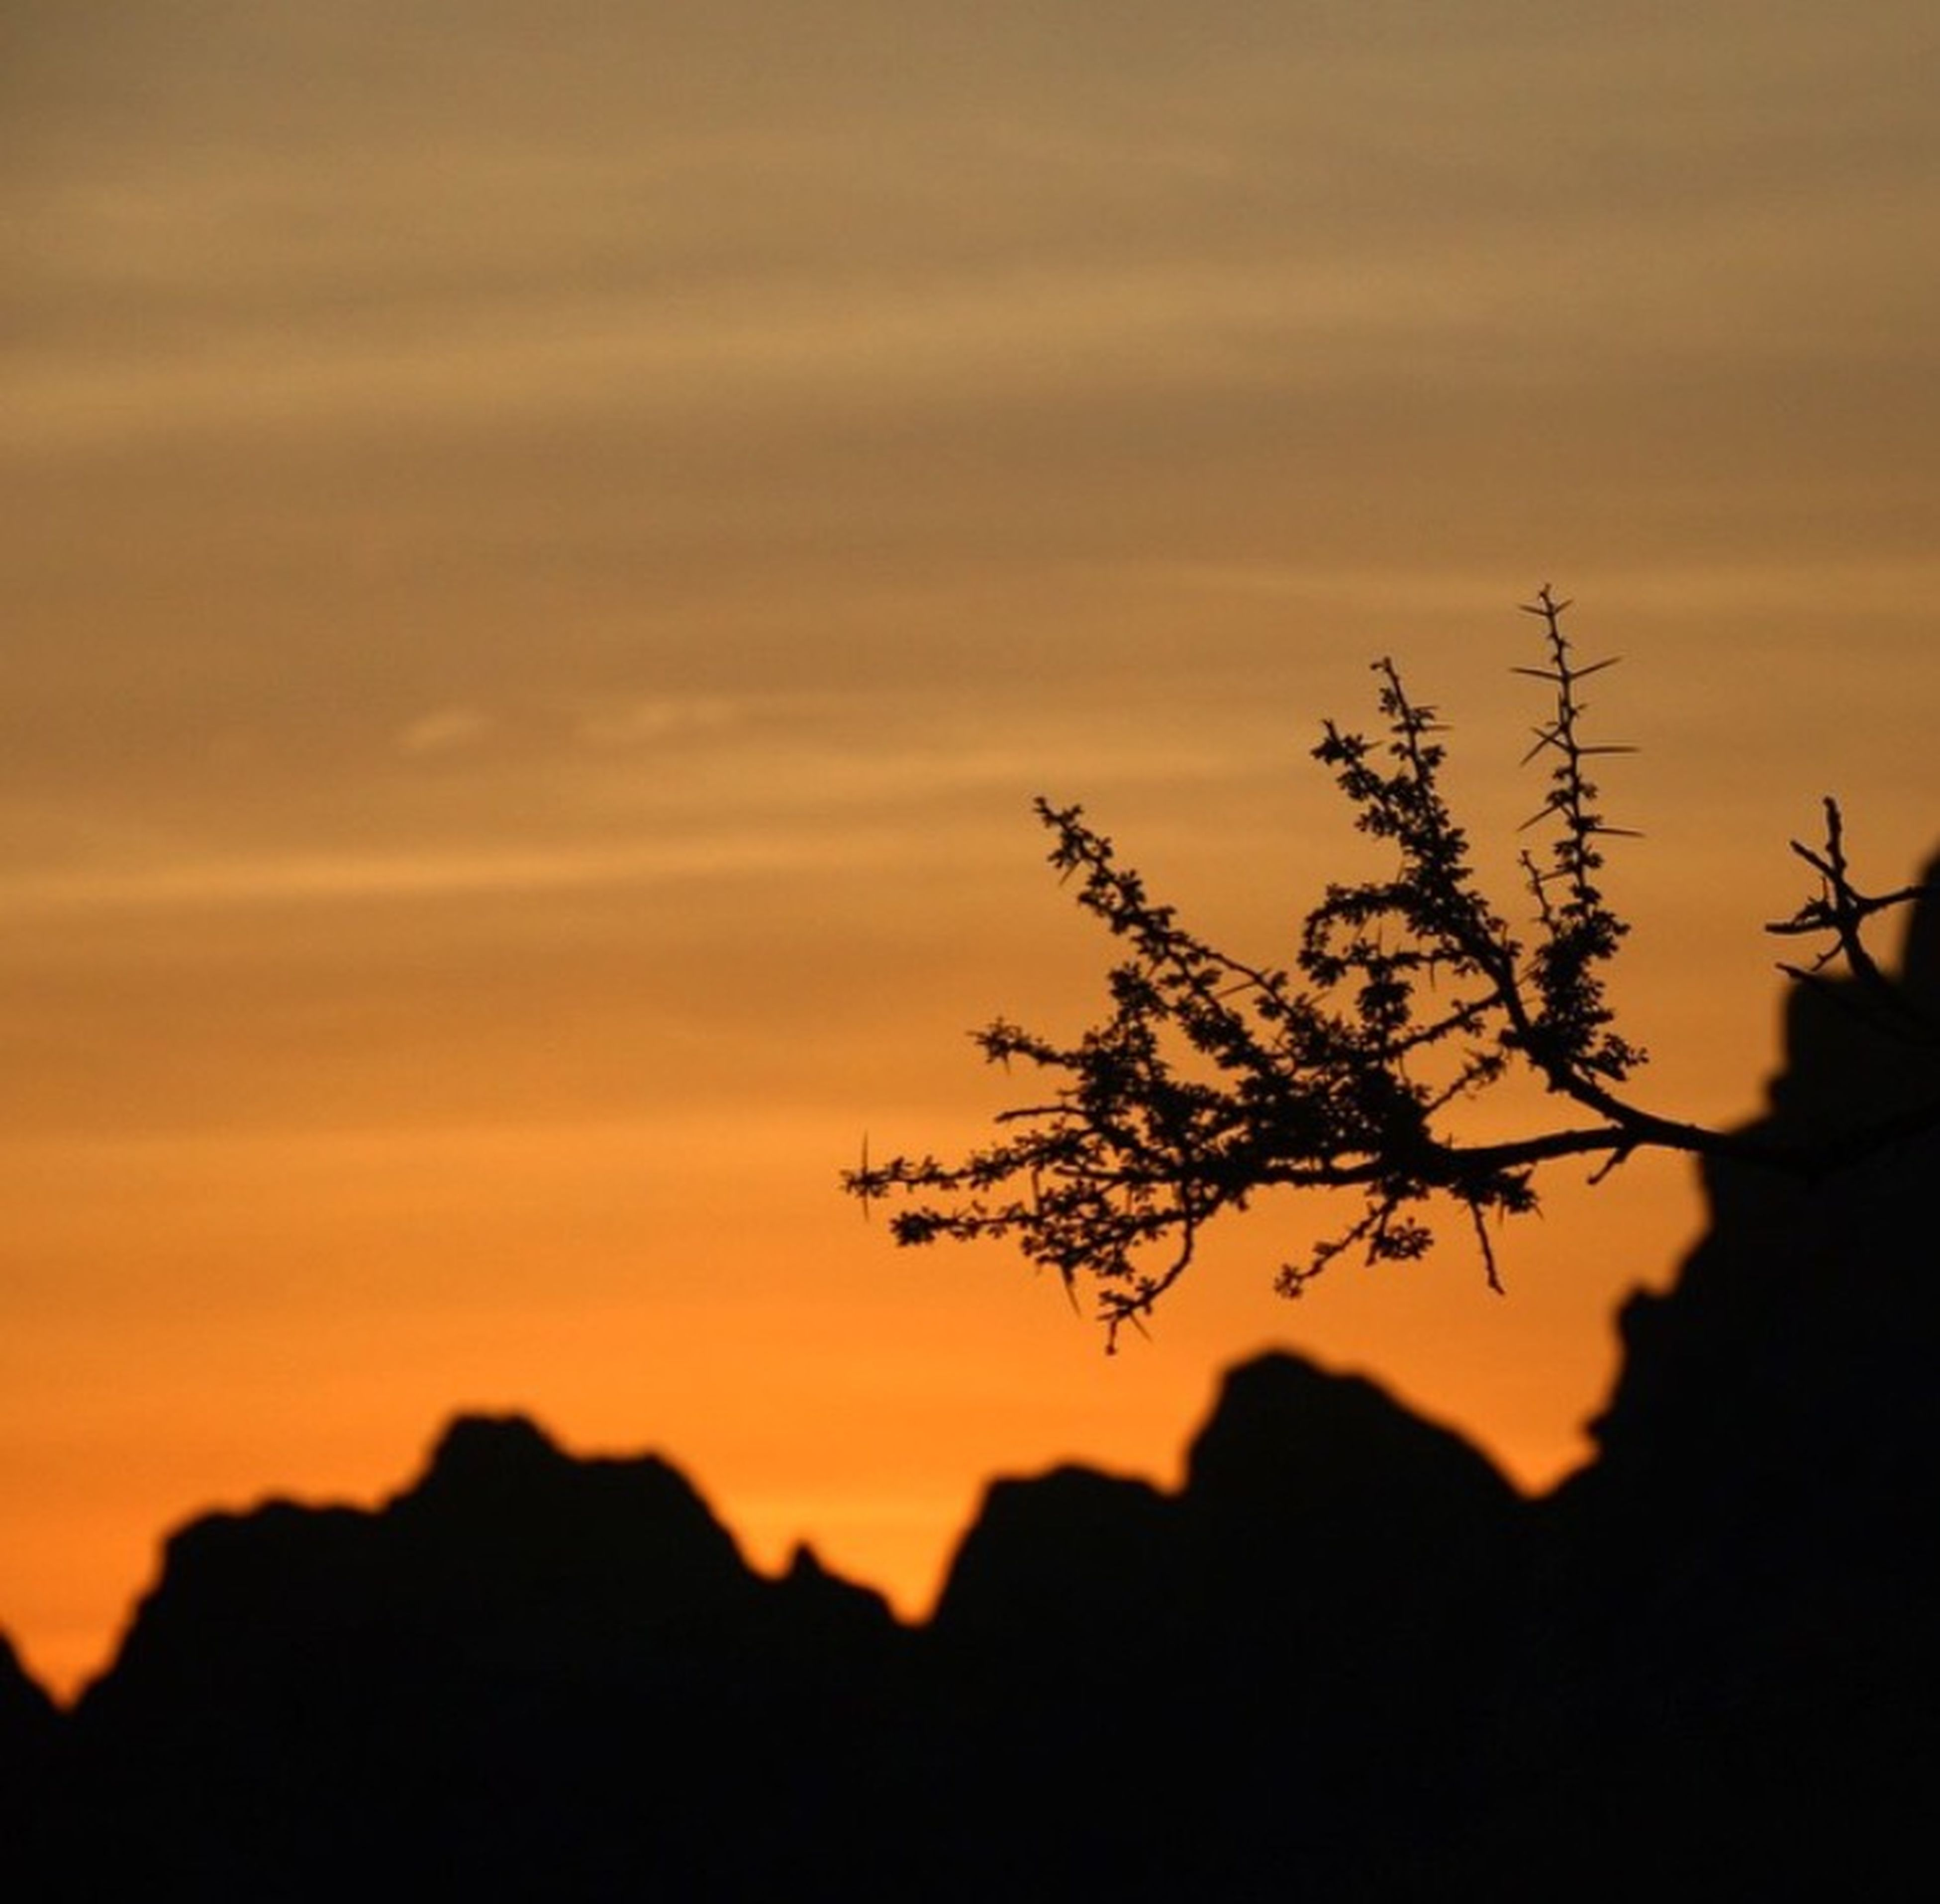 silhouette, sunset, sky, beauty in nature, tree, nature, branch, growth, tranquility, orange color, low angle view, scenics, tranquil scene, focus on foreground, outdoors, plant, no people, dusk, idyllic, cloud - sky